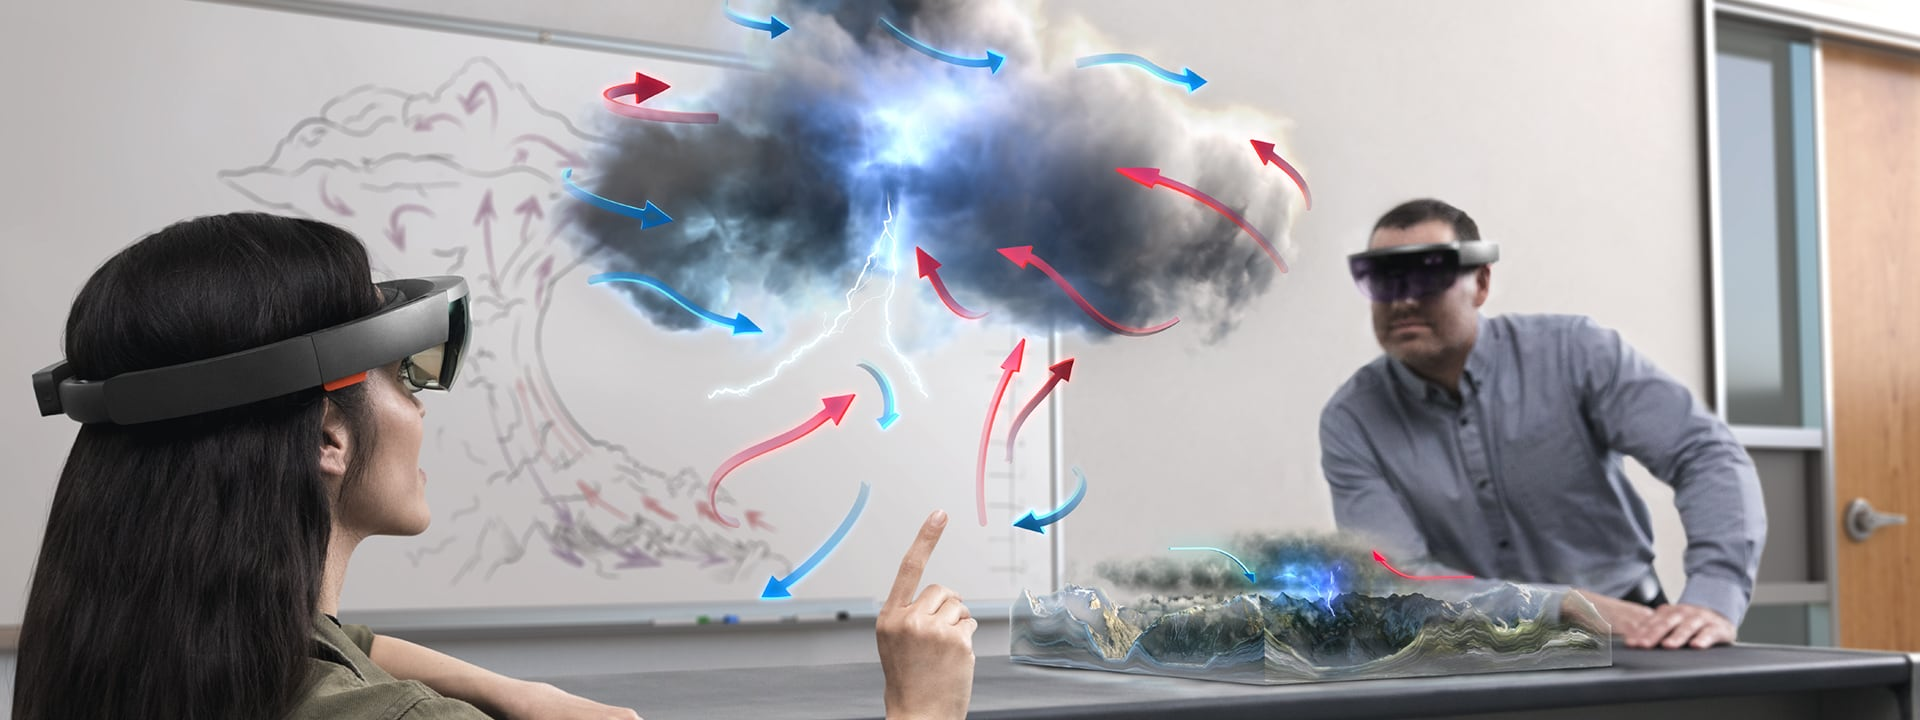 An image of a pair of people standing altogether far too close to a holographic thundercloud diagram.